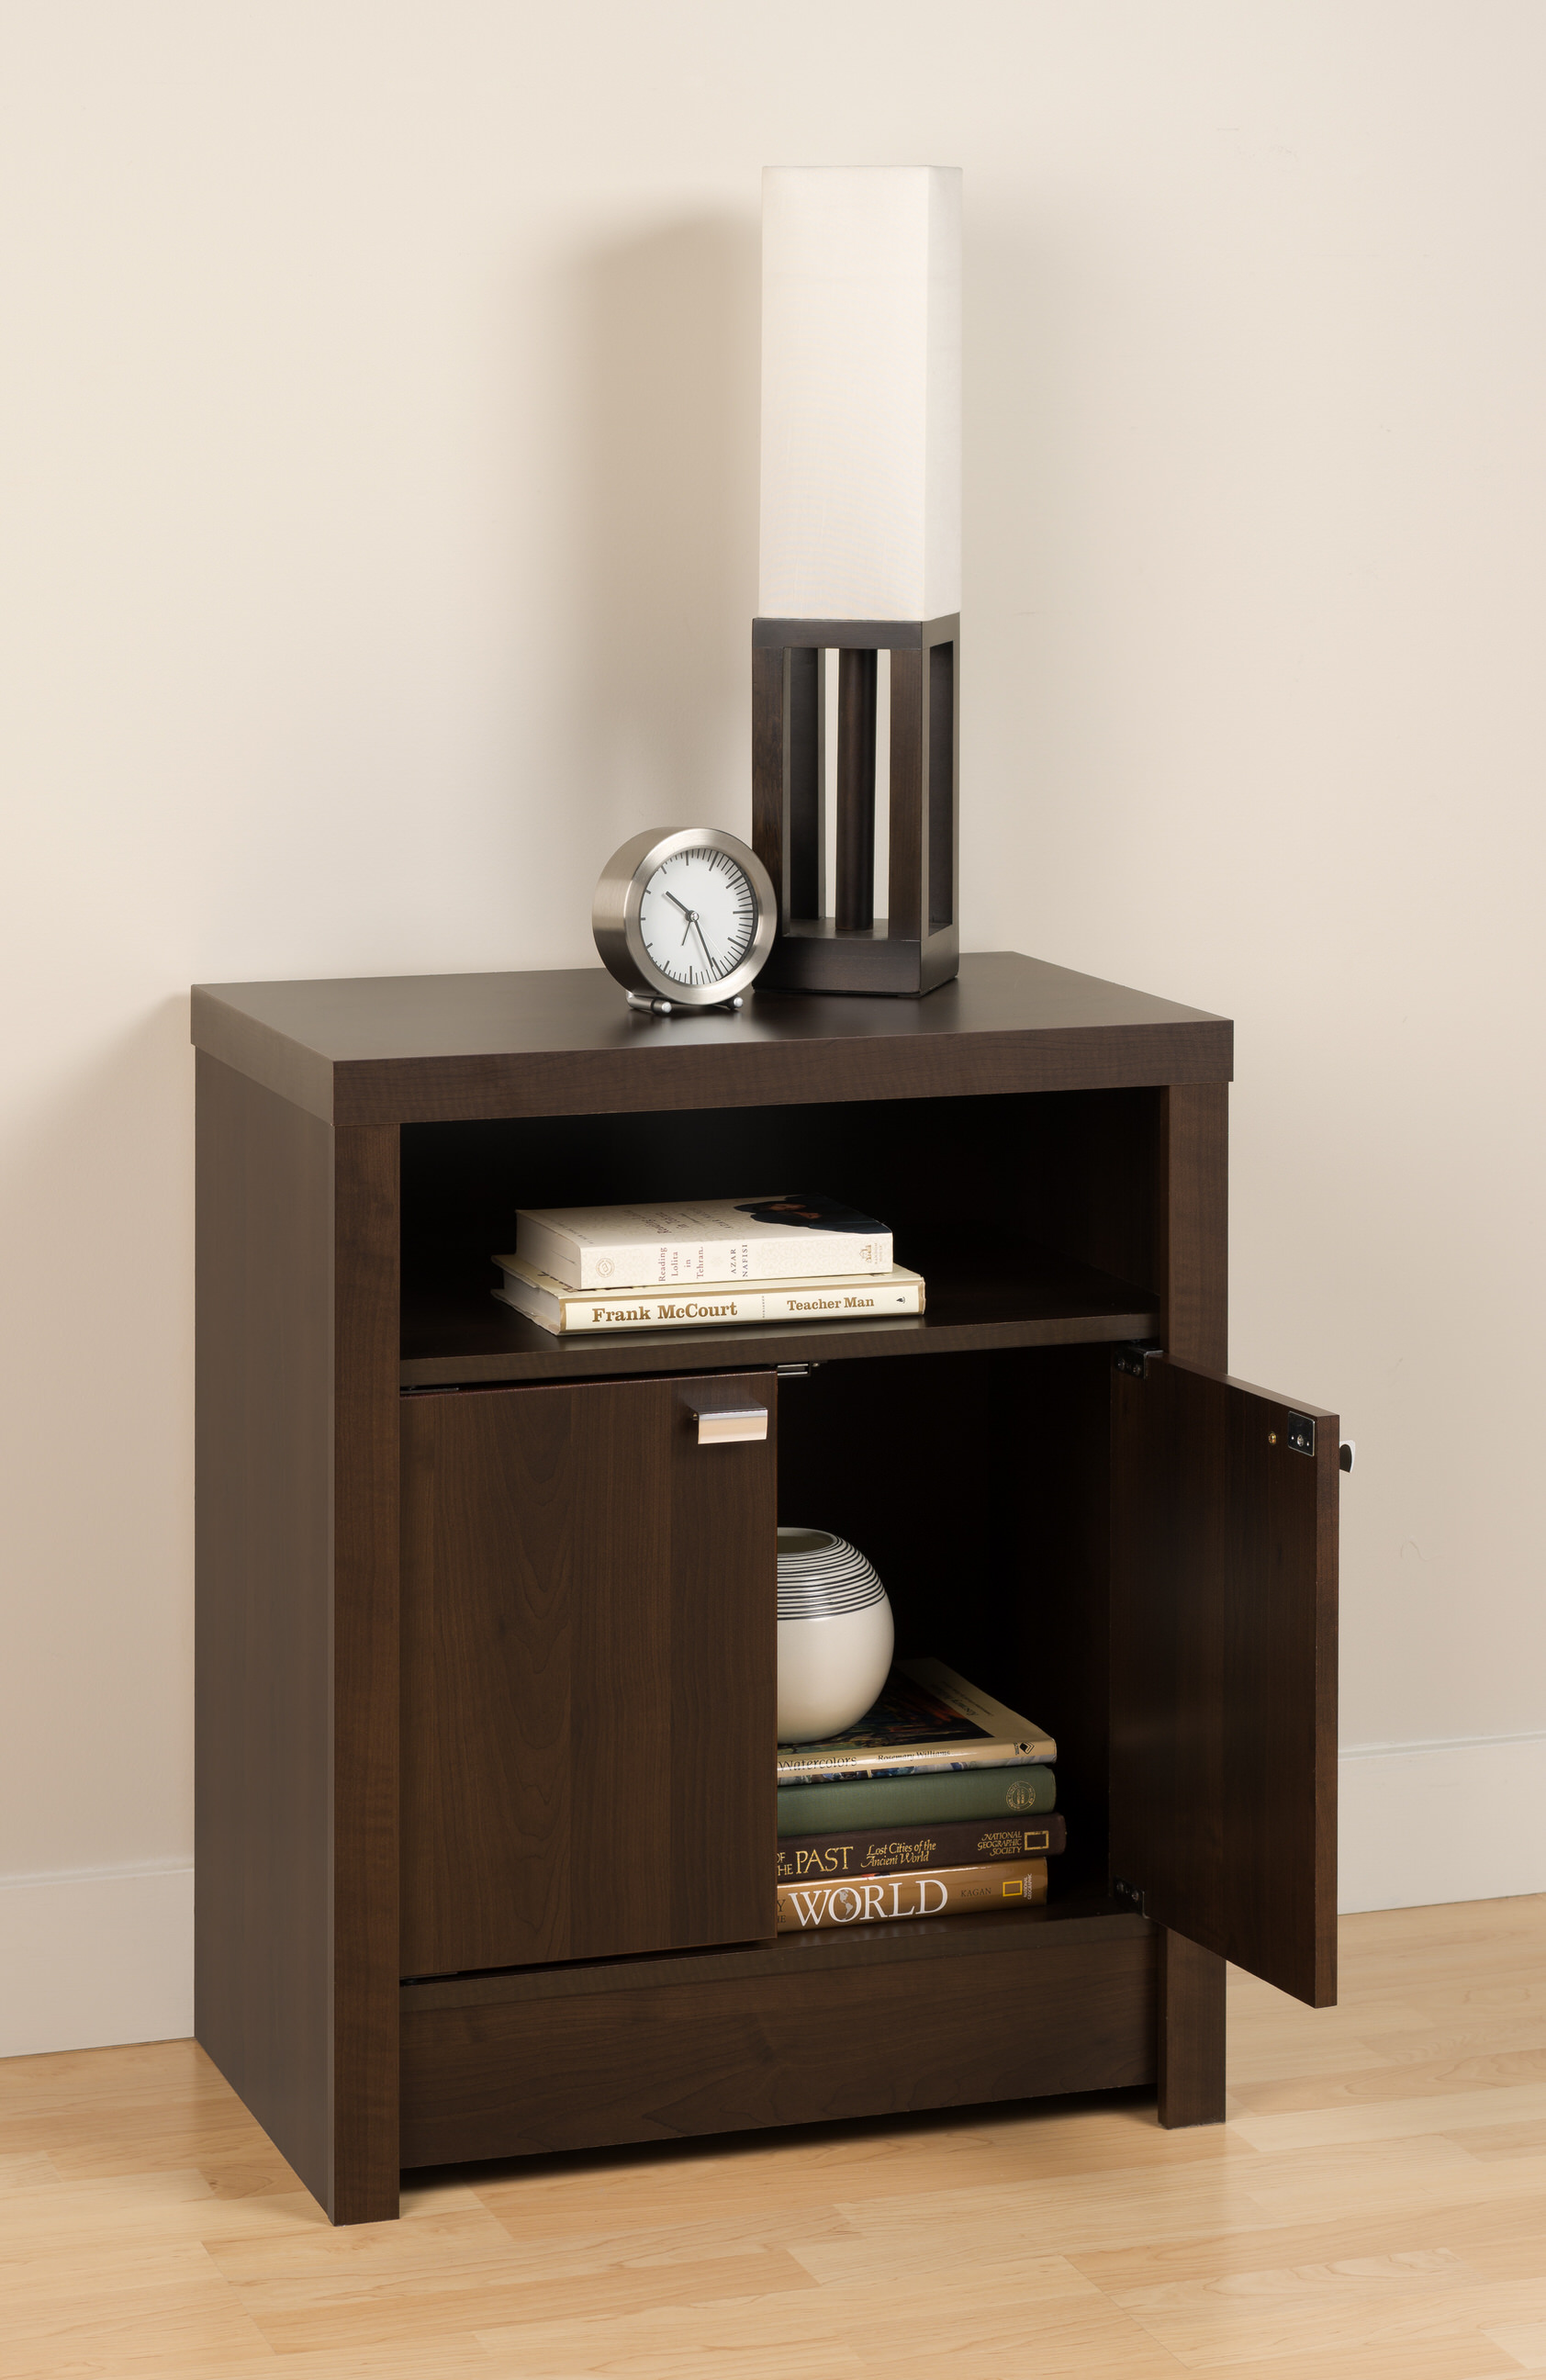 Series 9 designer 2 door tall nightstand by prepac for Tall modern nightstands